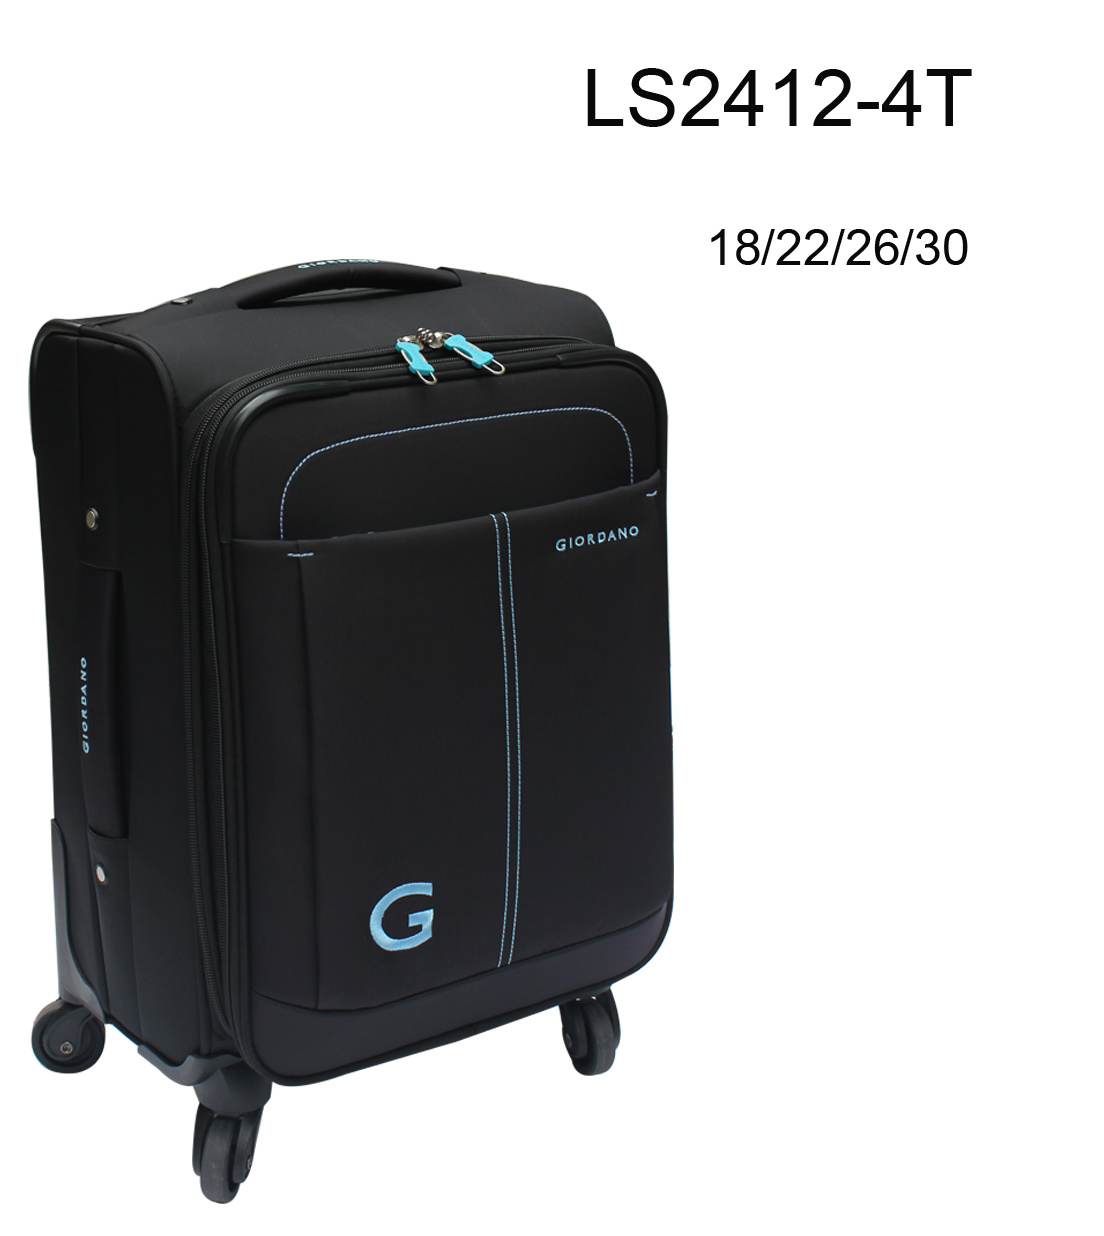 Universal Trolley Suitcase Bag with Wheels